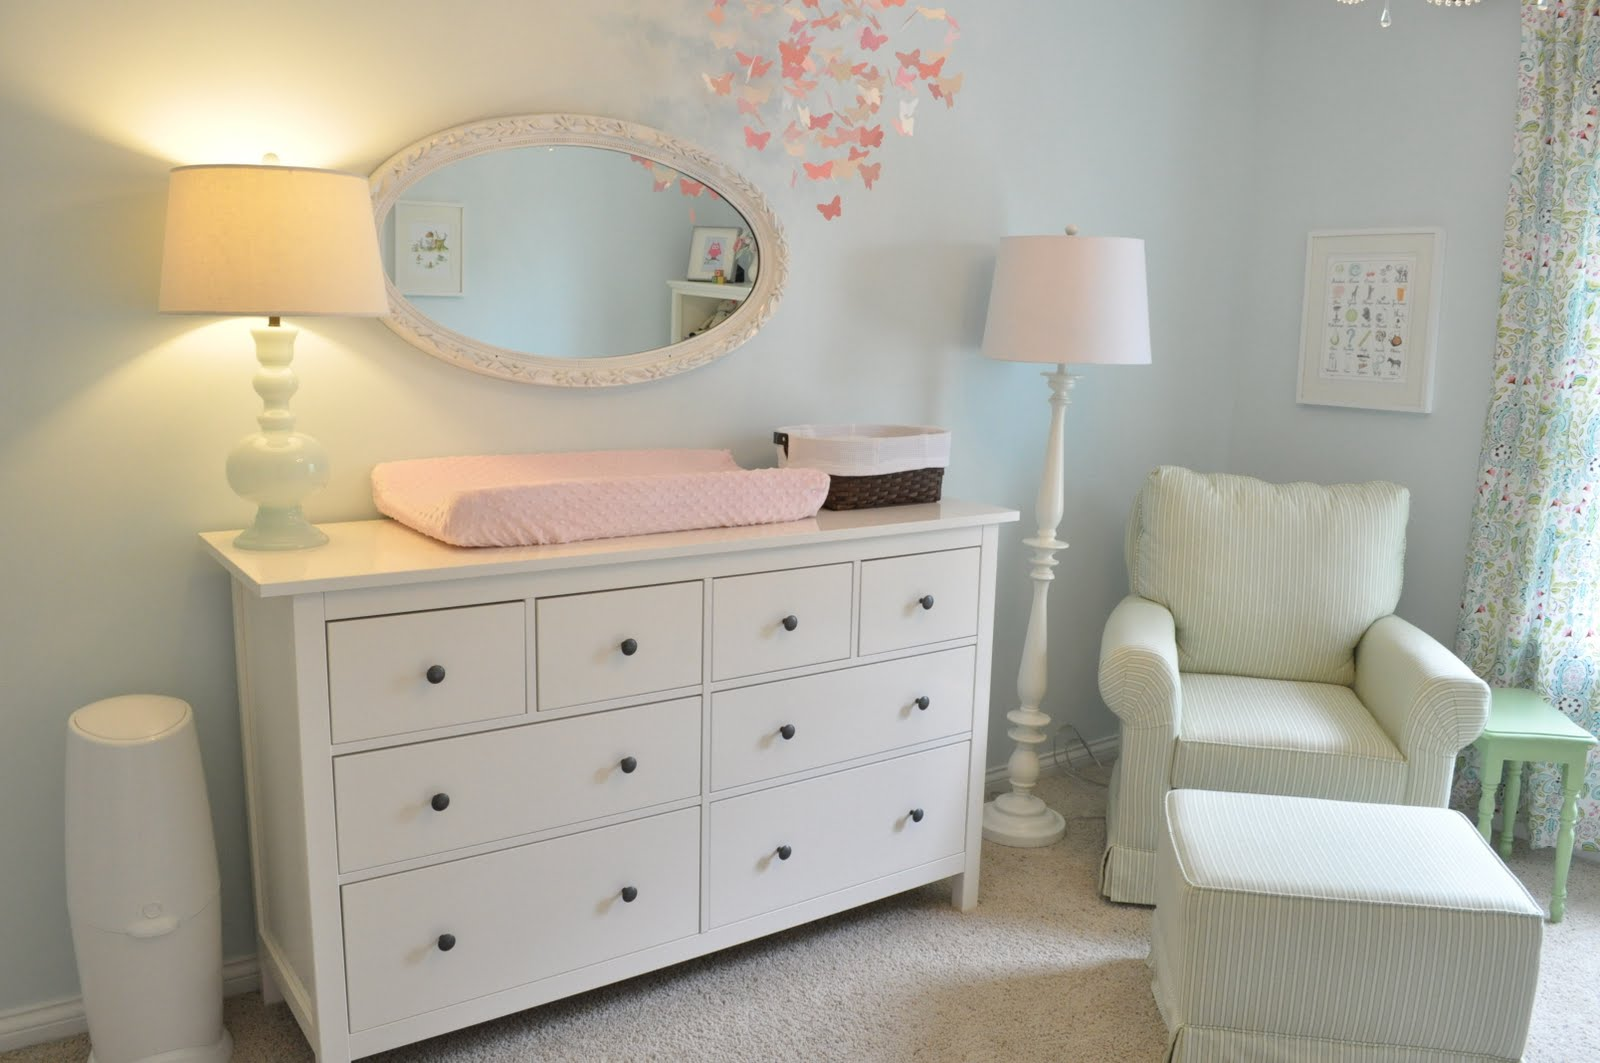 Ikea Glass Cabinet Fabrikor ~ Anyone have pics of Ikea Hemnes dresser in nursery? — The Bump